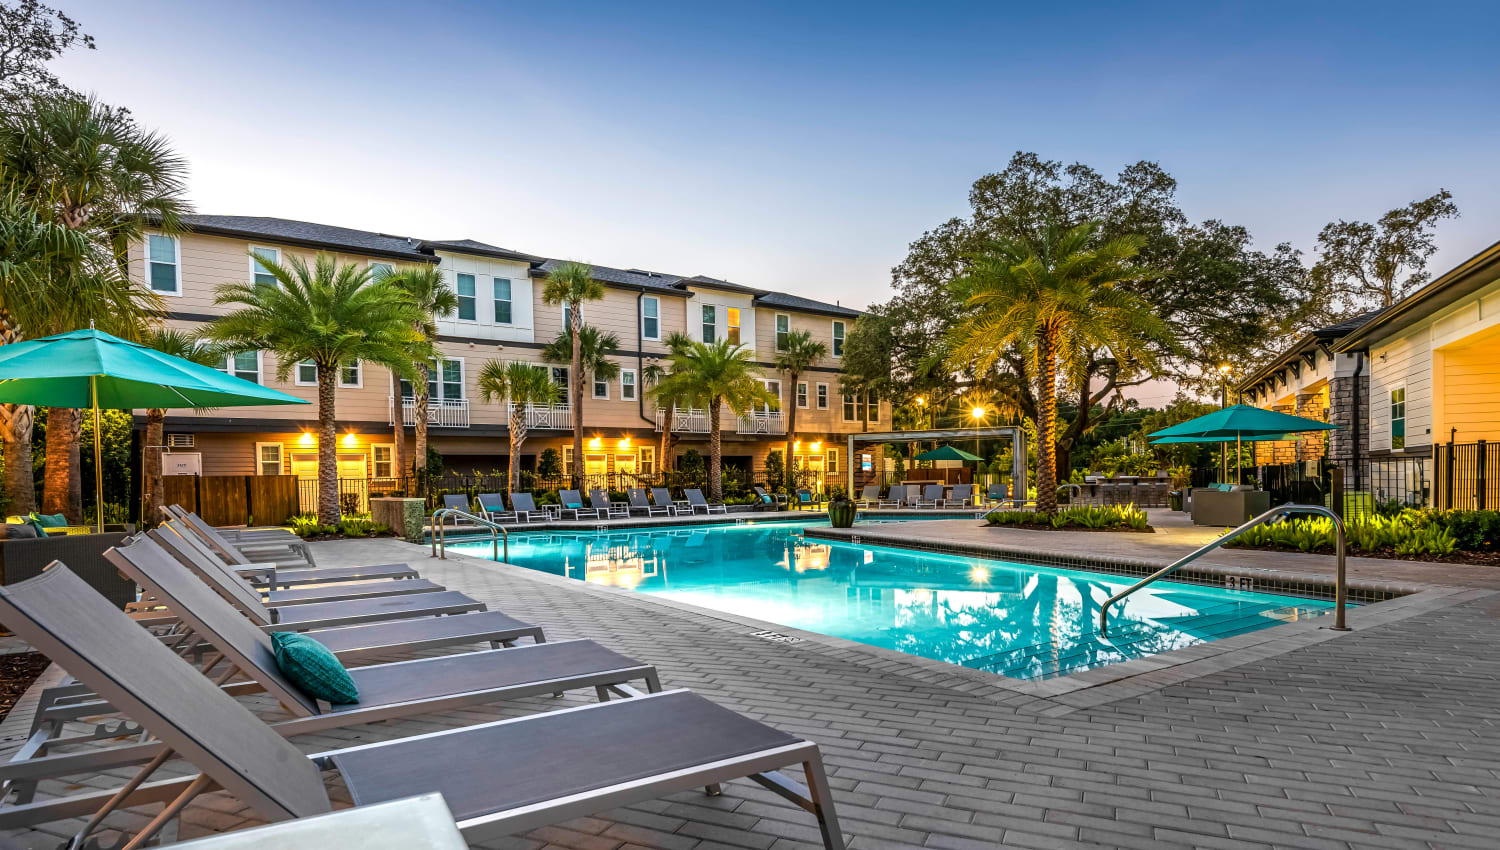 Dusk at the swimming pool area at Canopy at Citrus Park in Tampa, Florida